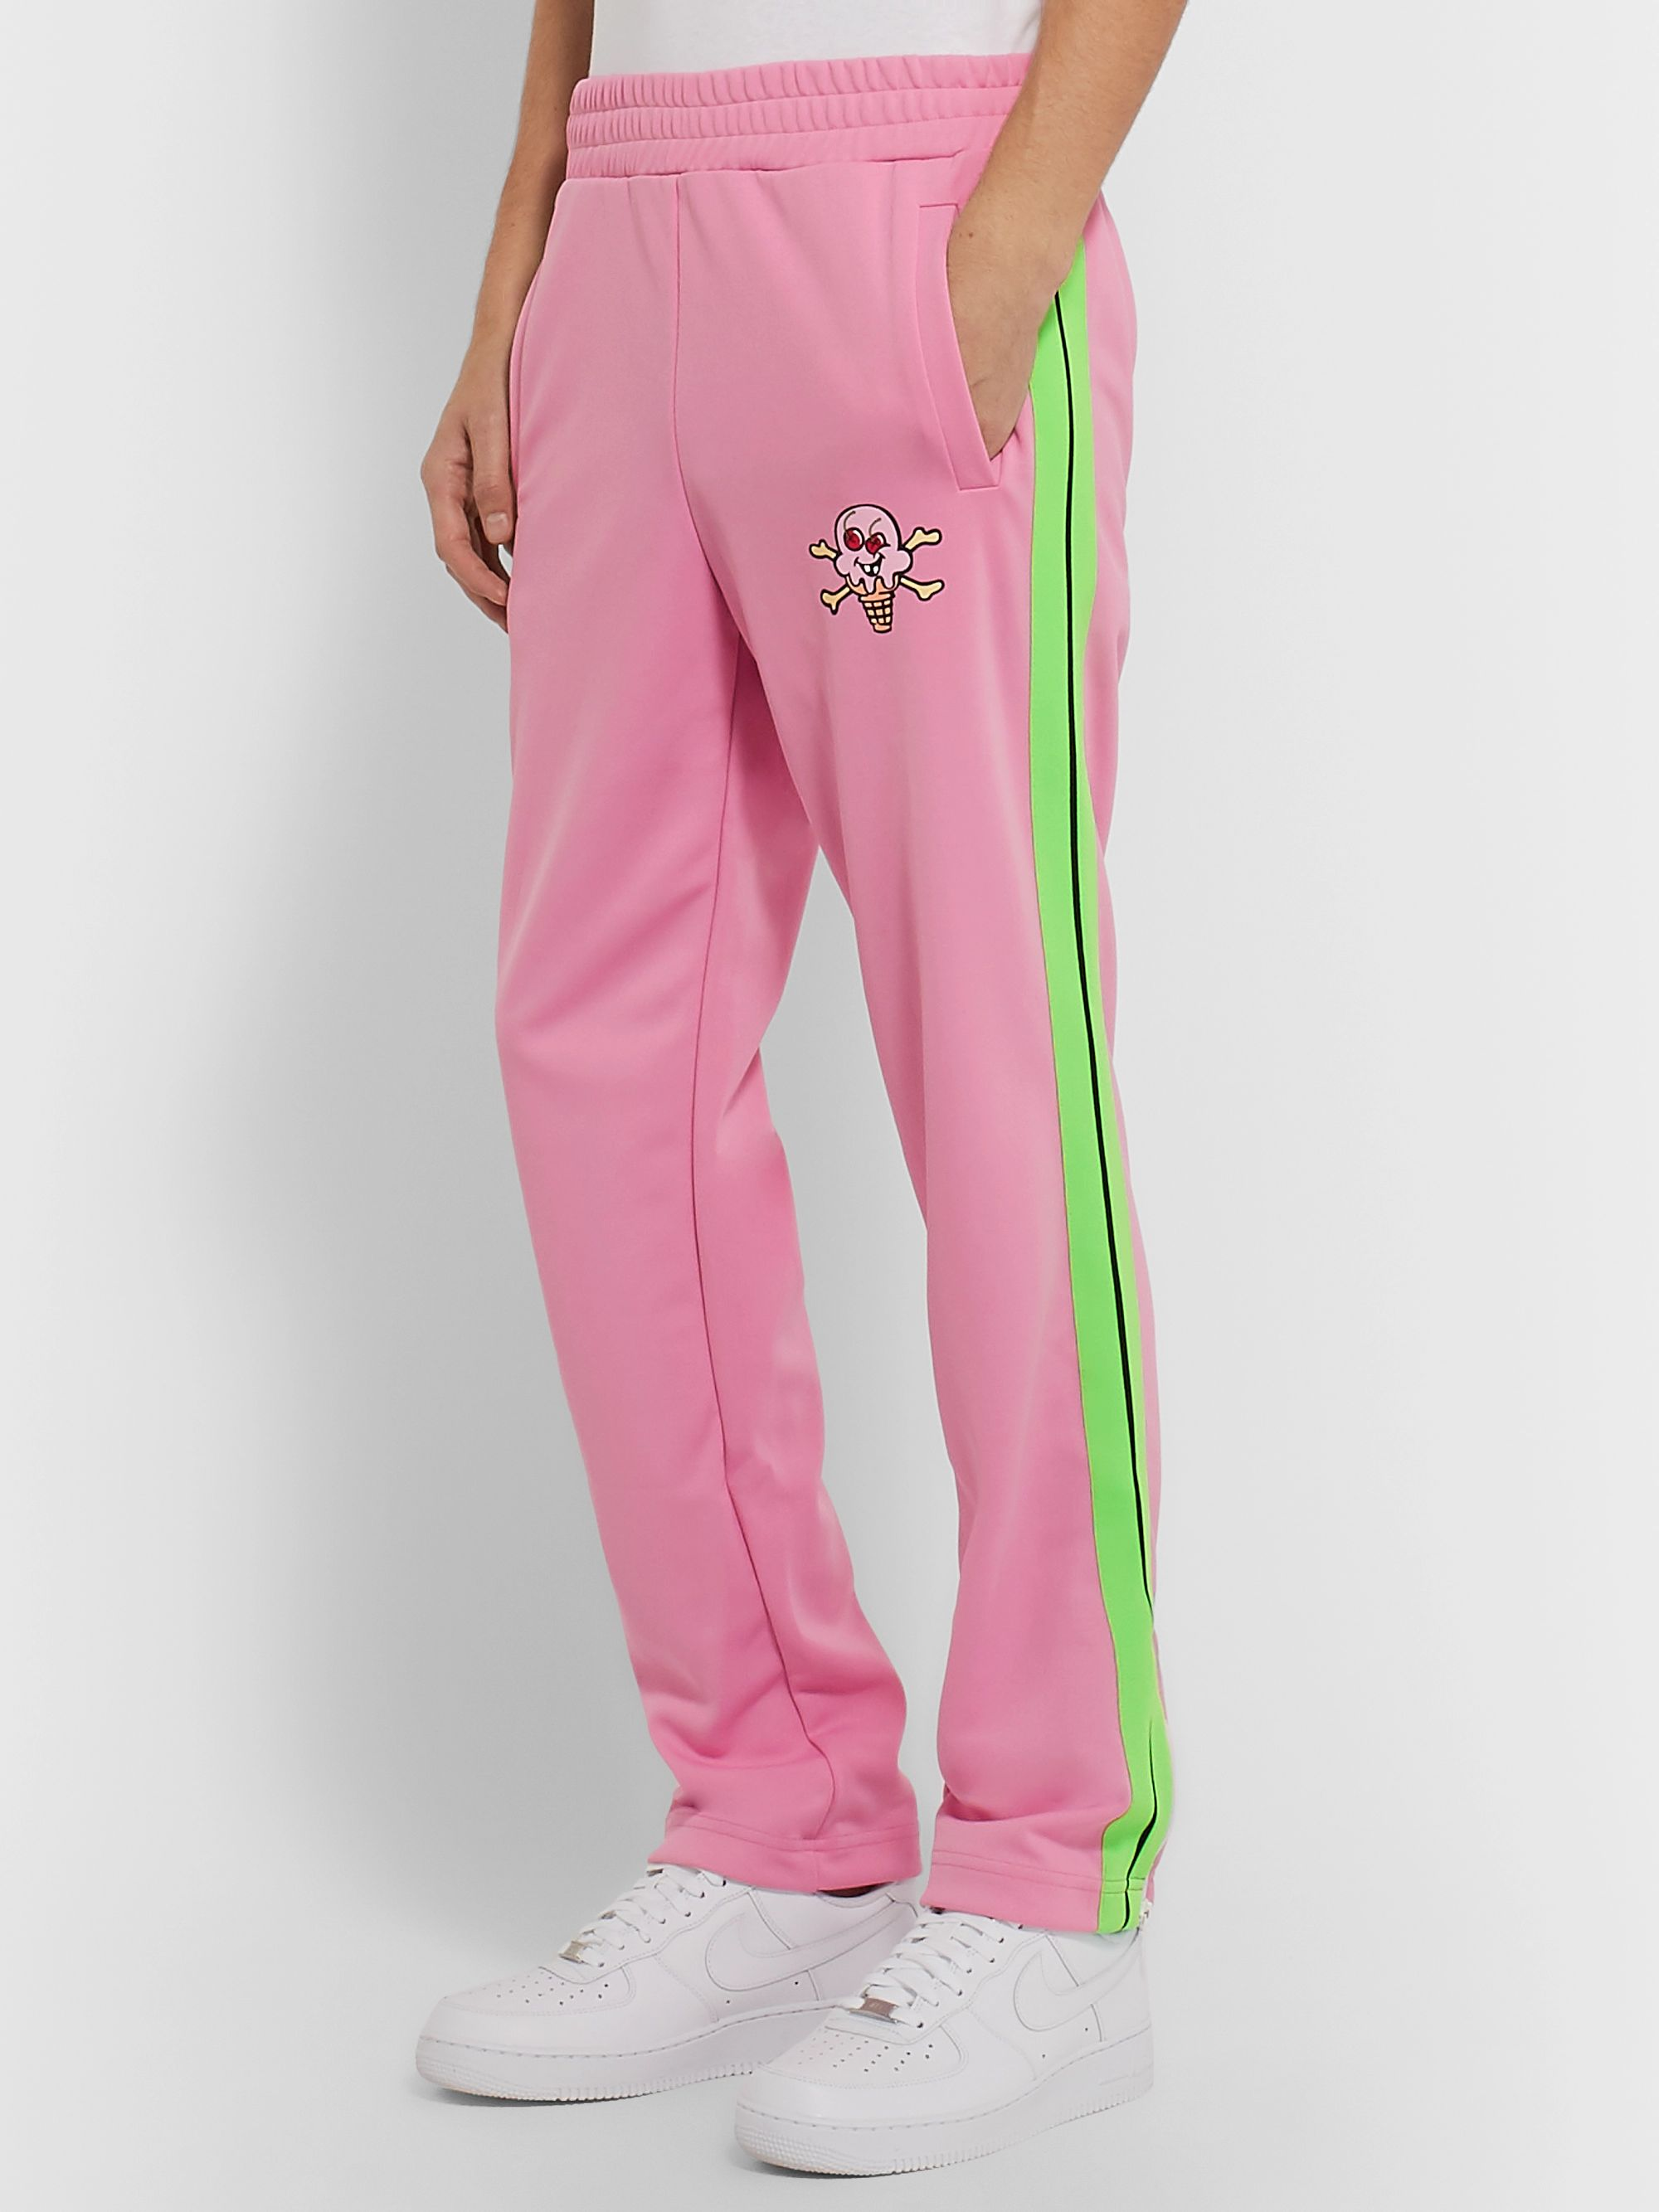 Palm Angels + ICECREAM Striped Printed Tech-Jersey Track Pants